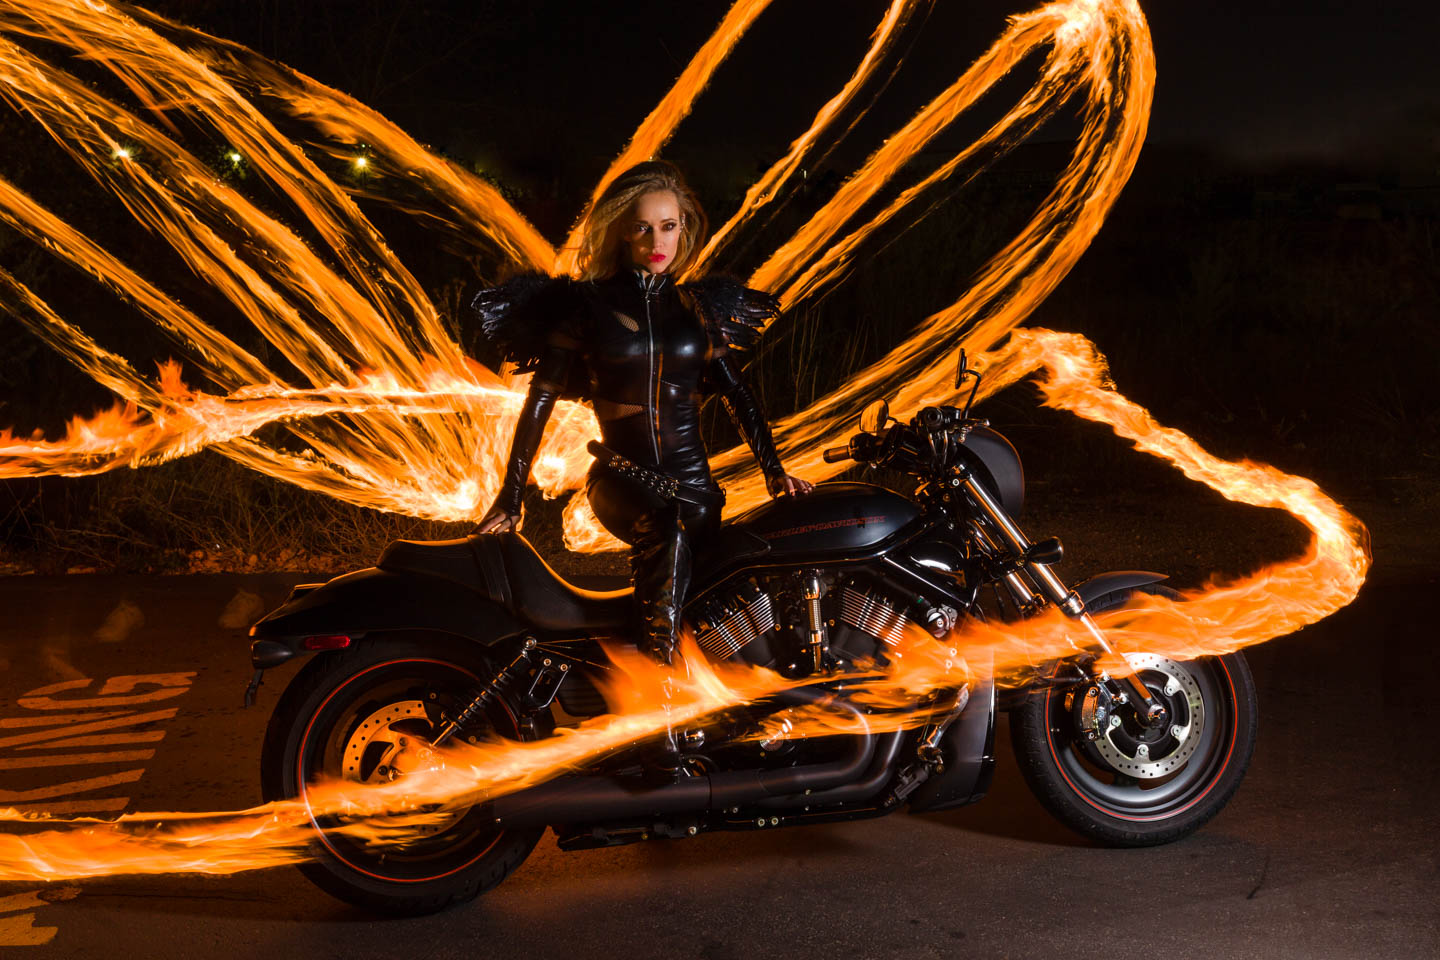 Woman on a motorcycle surrounded by fire